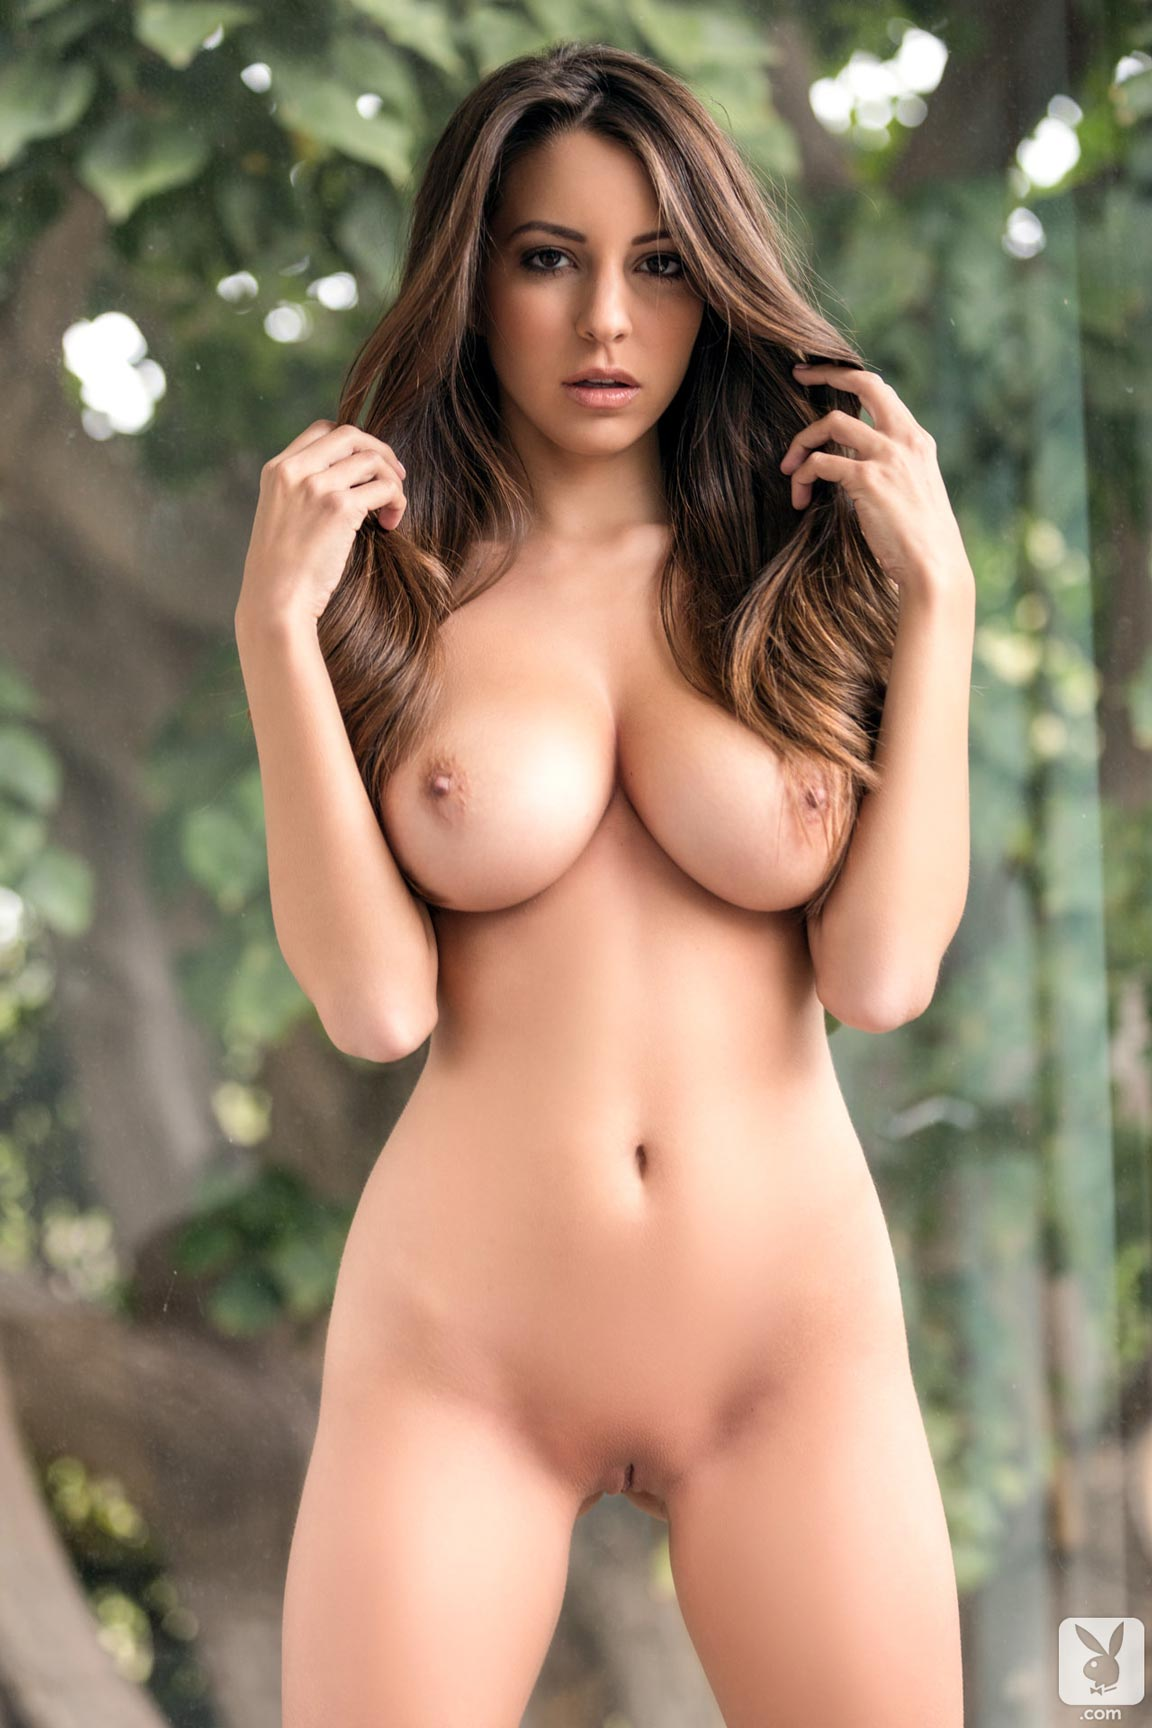 Playboy Playmate Shelby Chesnes starts the day with a ...